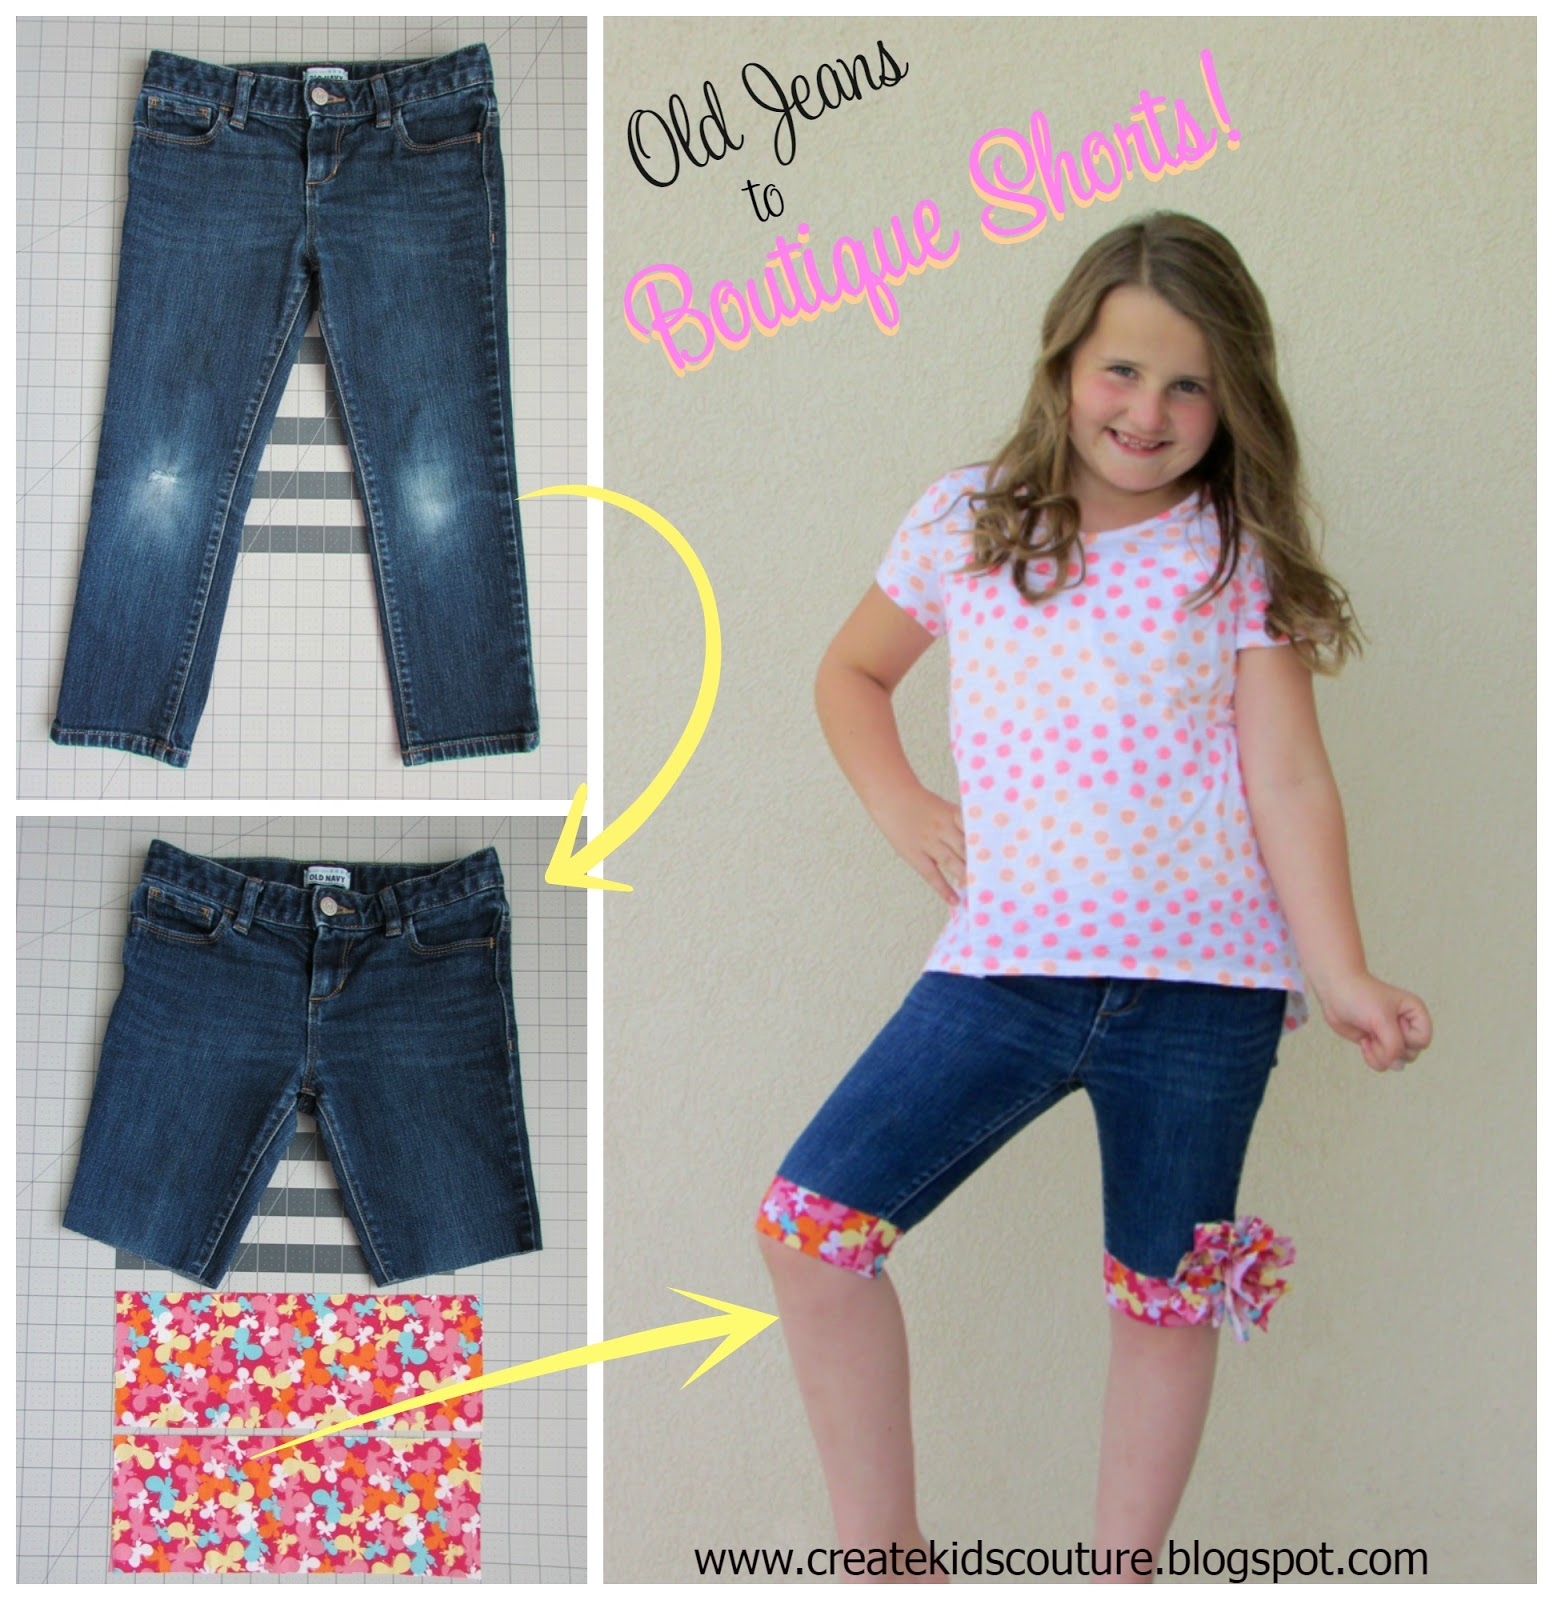 Upcycle Old Jeans into Cute Shorts Tutorials3